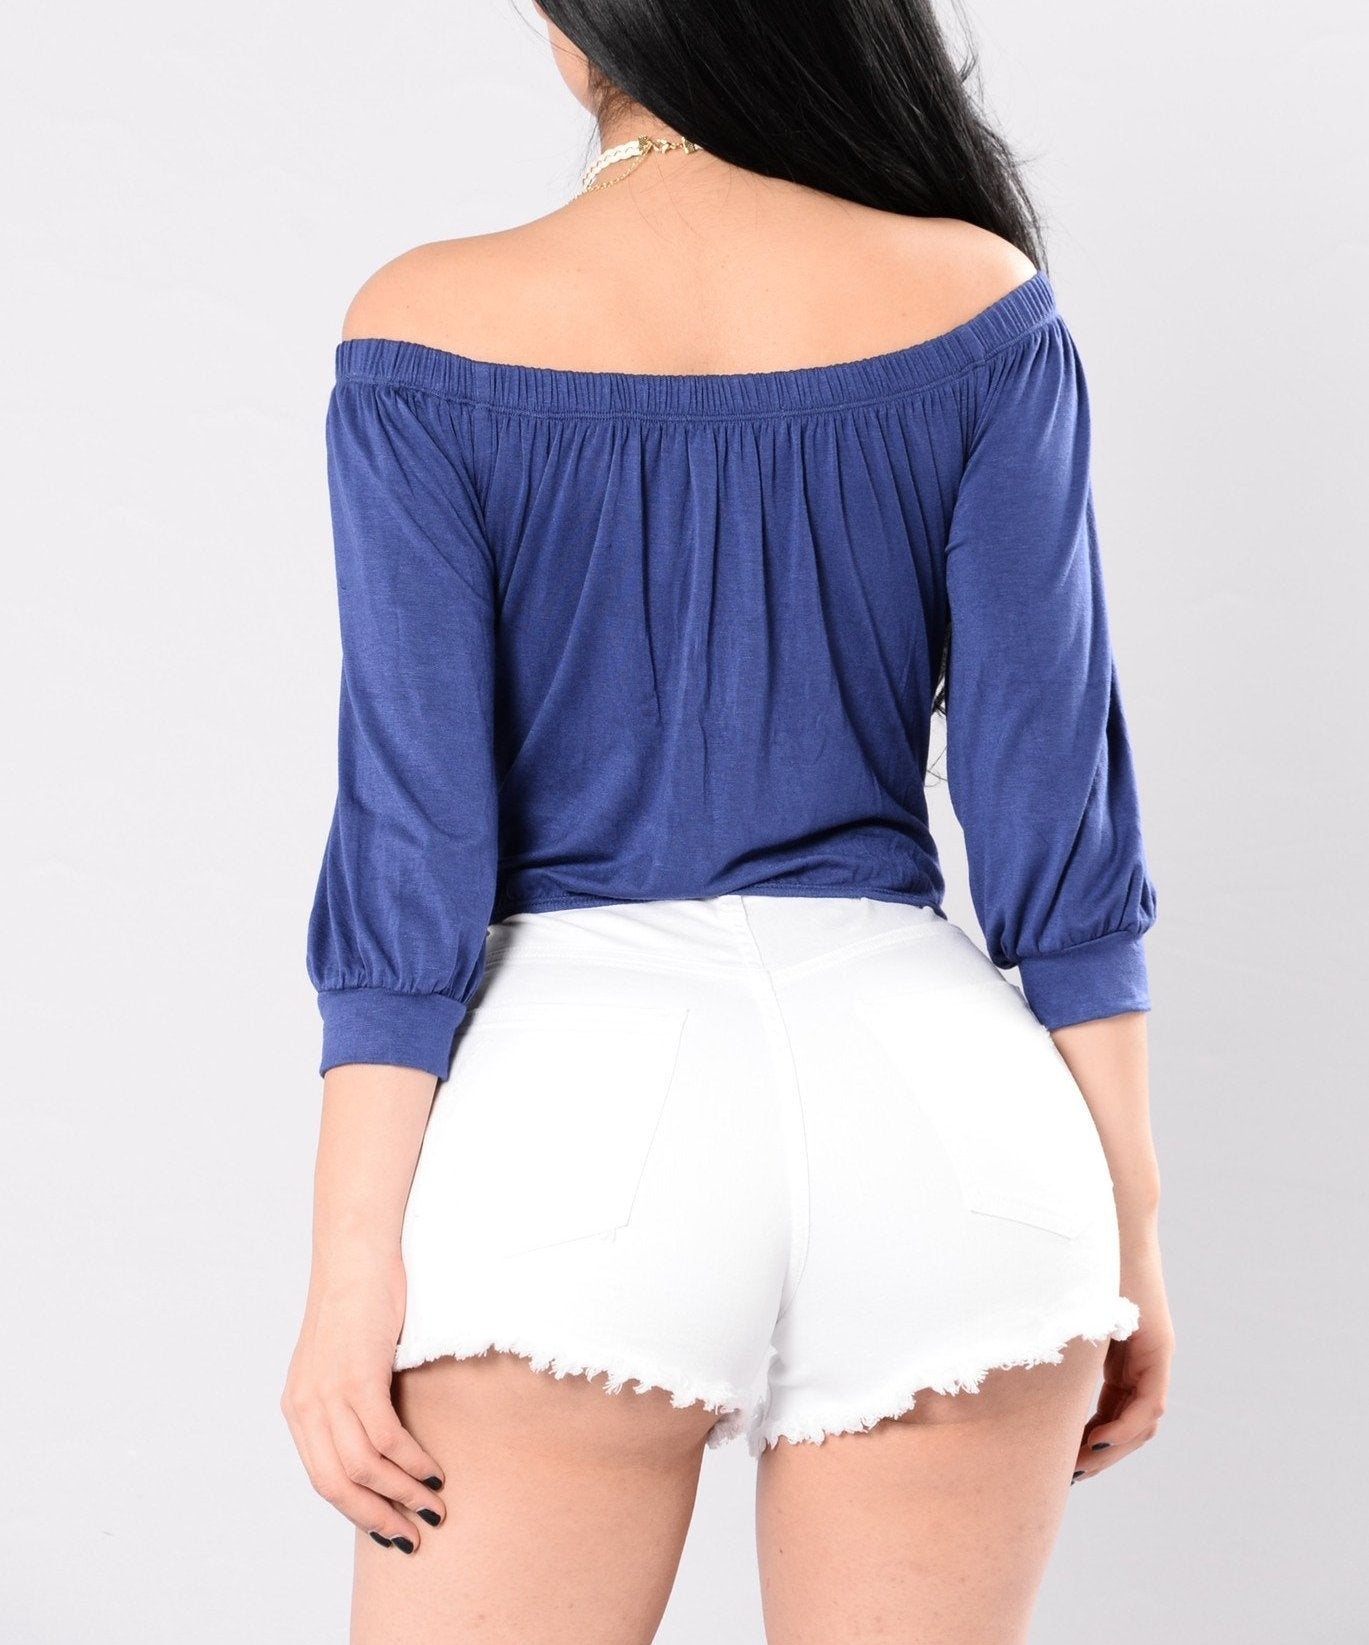 Knot Front Off Shoulder Crop Top in Blue